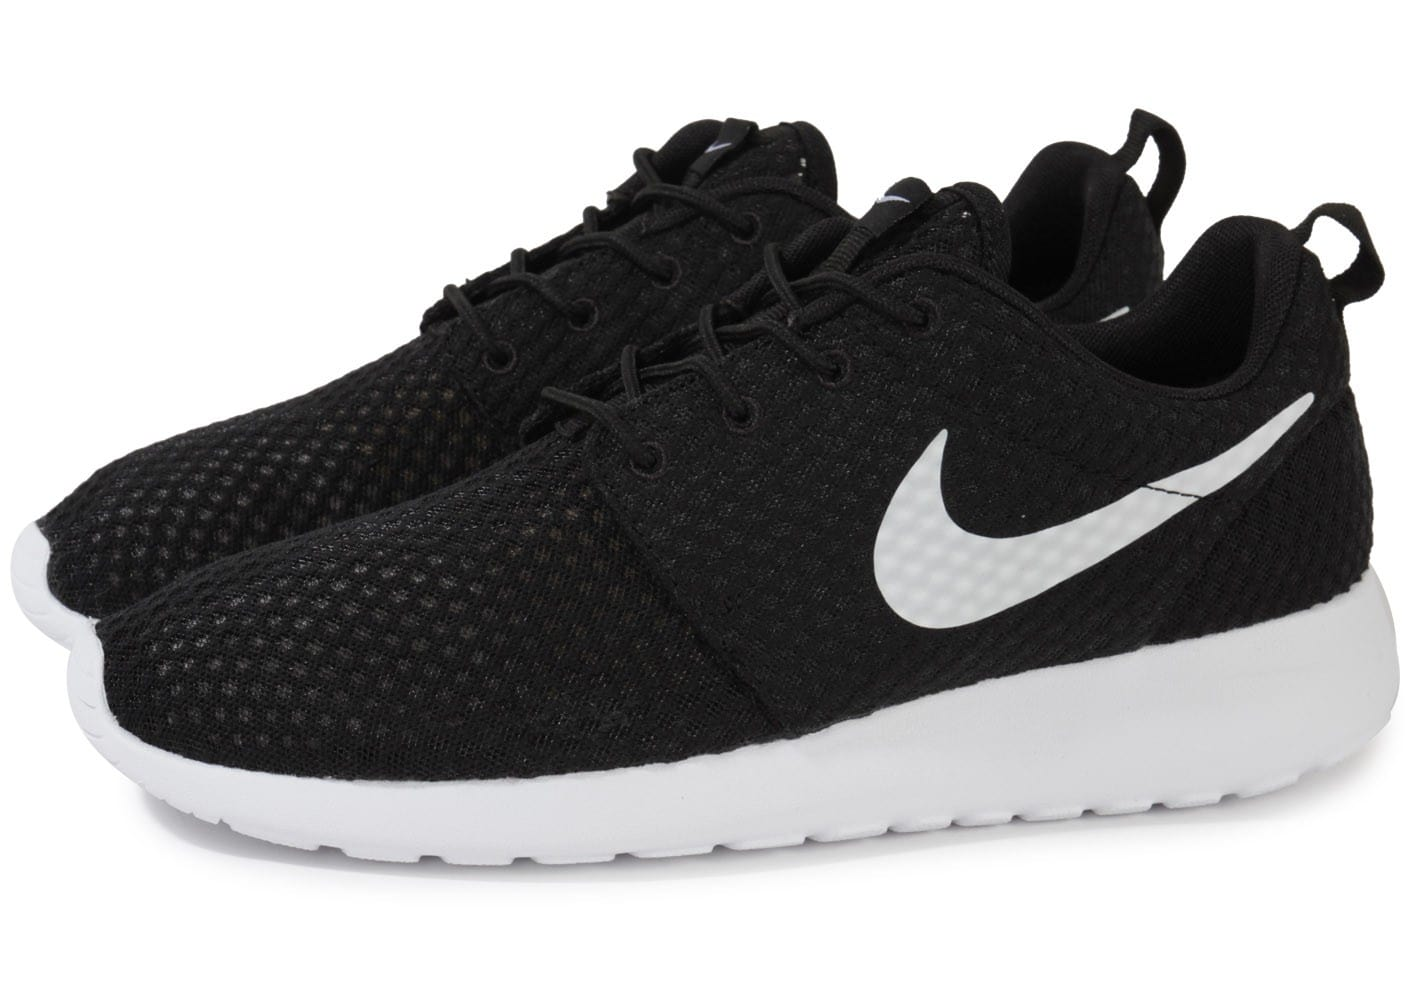 nike roshe run breeze noire chaussures homme chausport. Black Bedroom Furniture Sets. Home Design Ideas